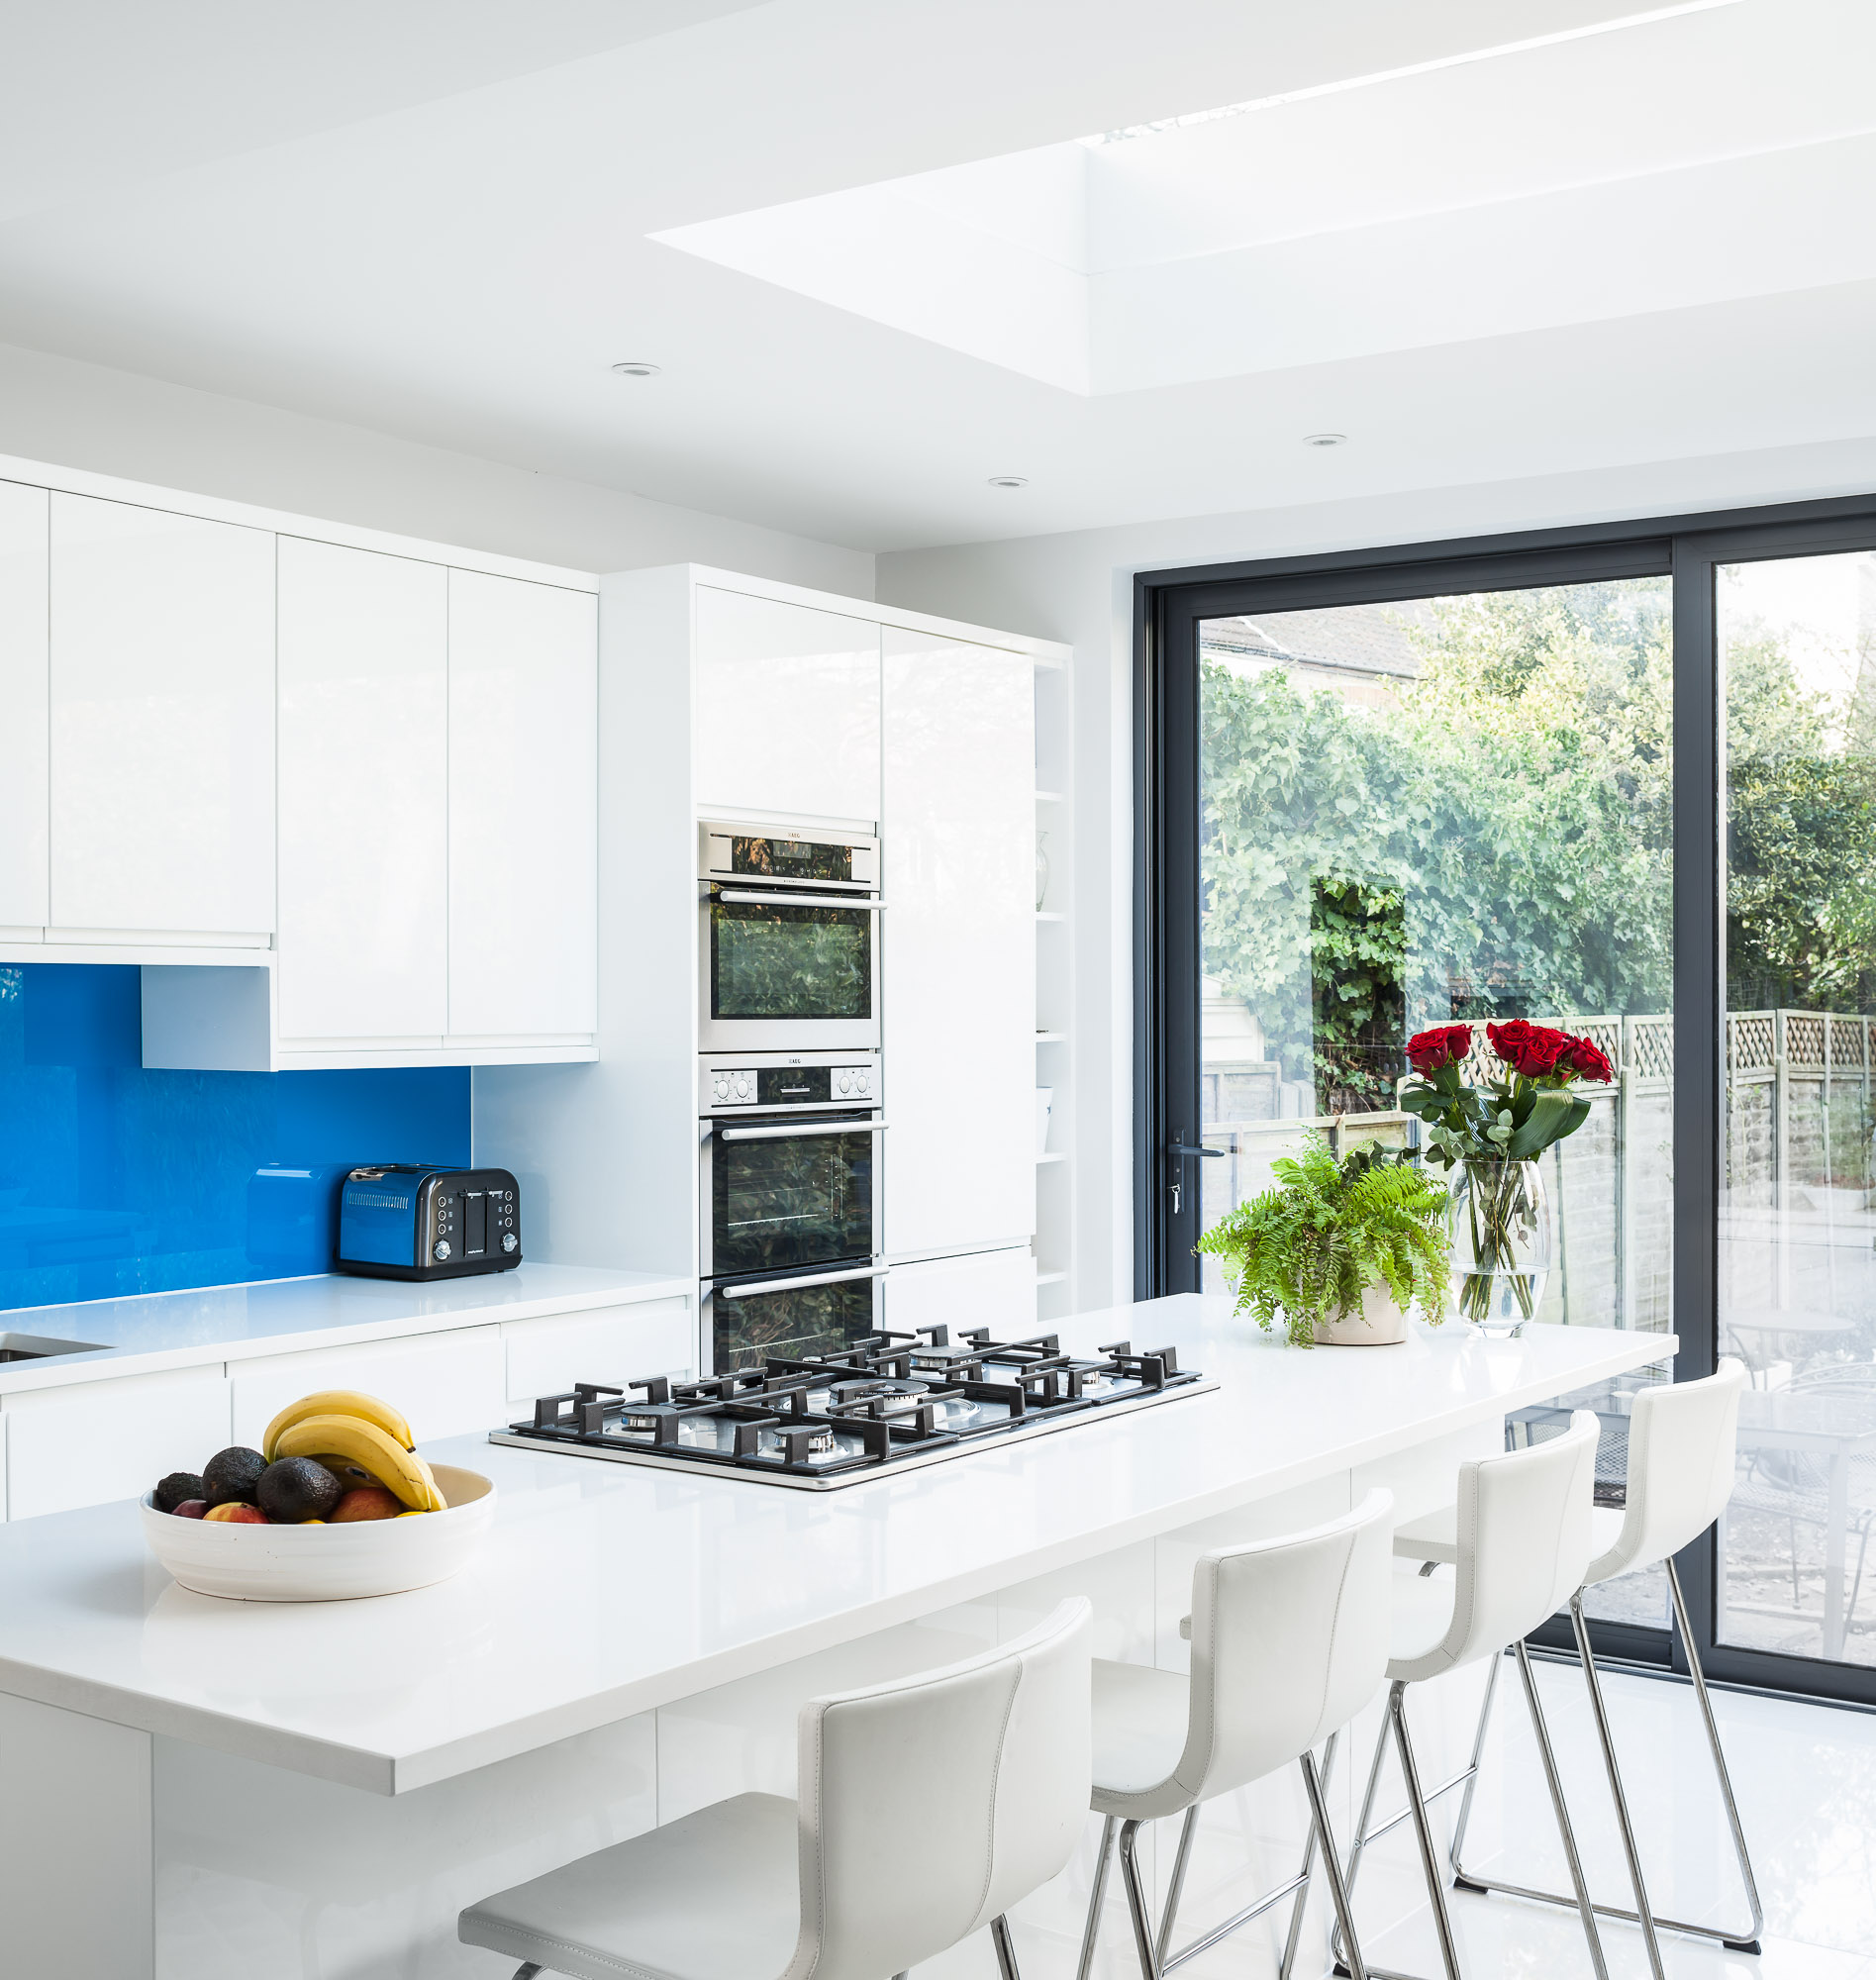 Richmond, TW9 - Kitchen Extension   A 4m ground floor extension to create a large kitchen/dining area. The works included refurbishing the whole ground floor adding in a utility space and a downstairs WC.